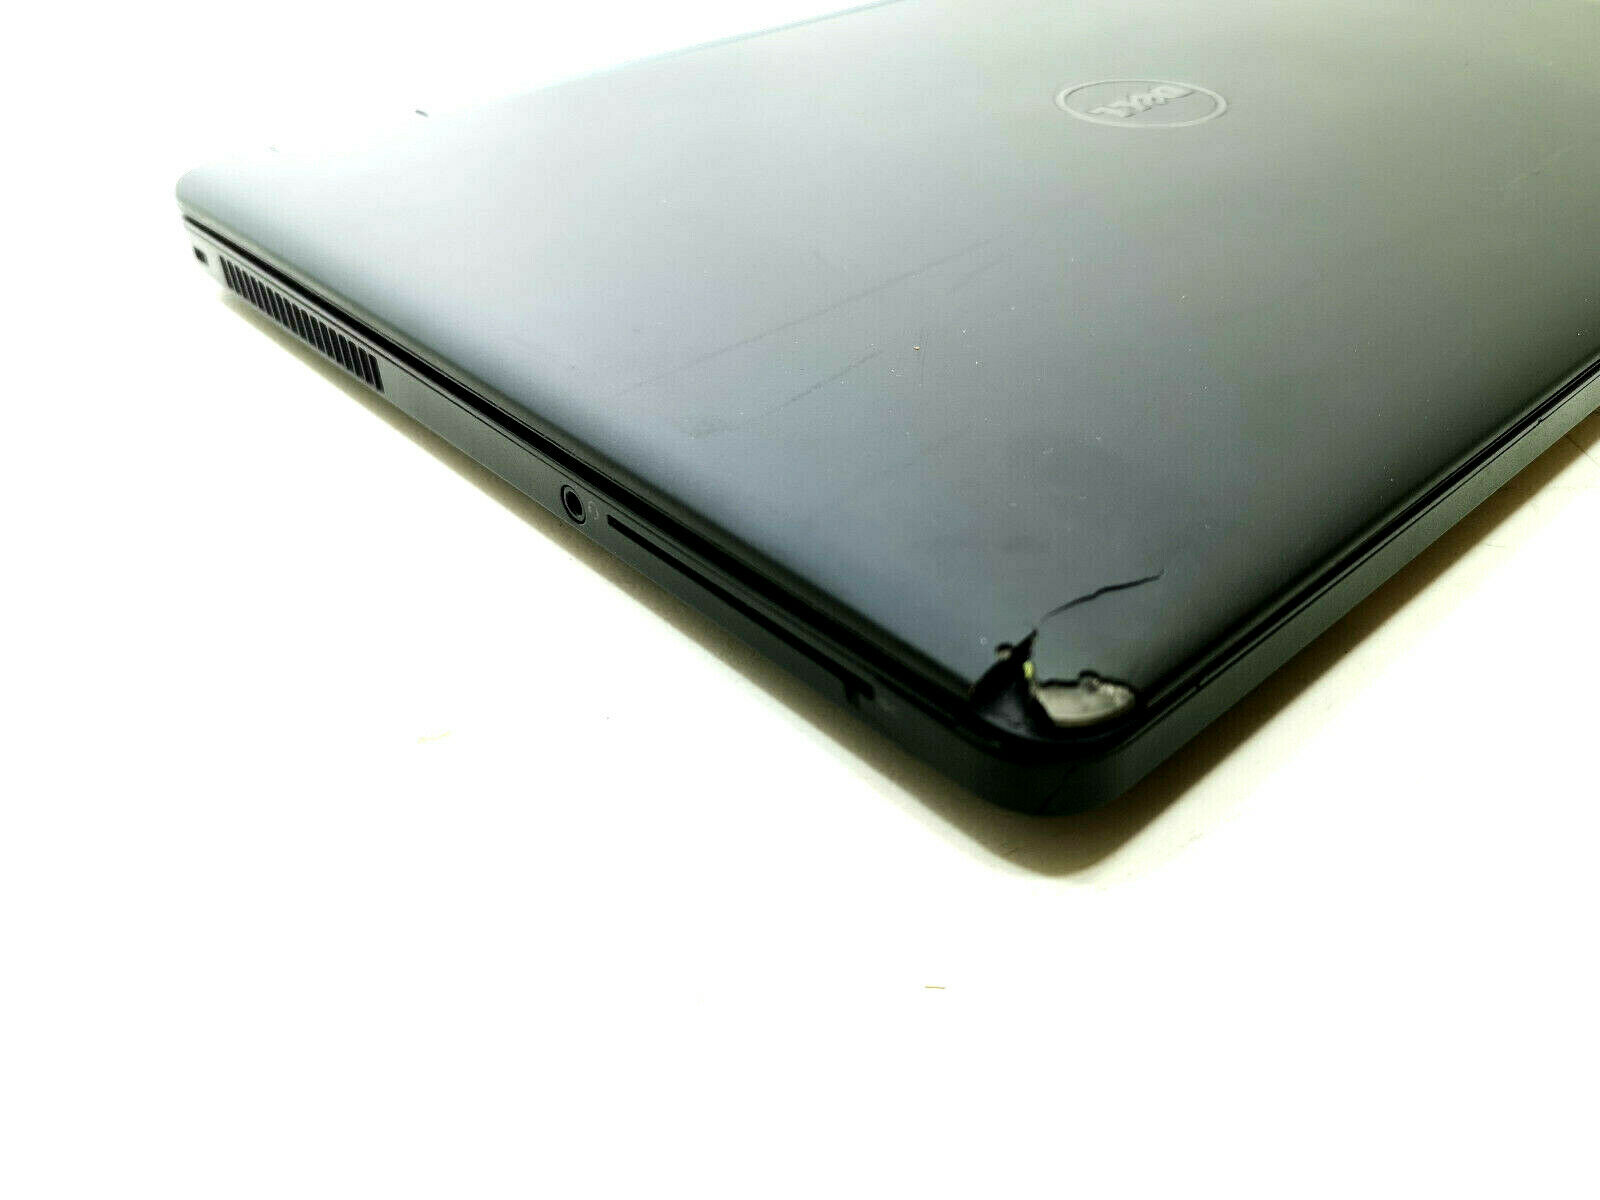 Dell Latitude E5550 No 5